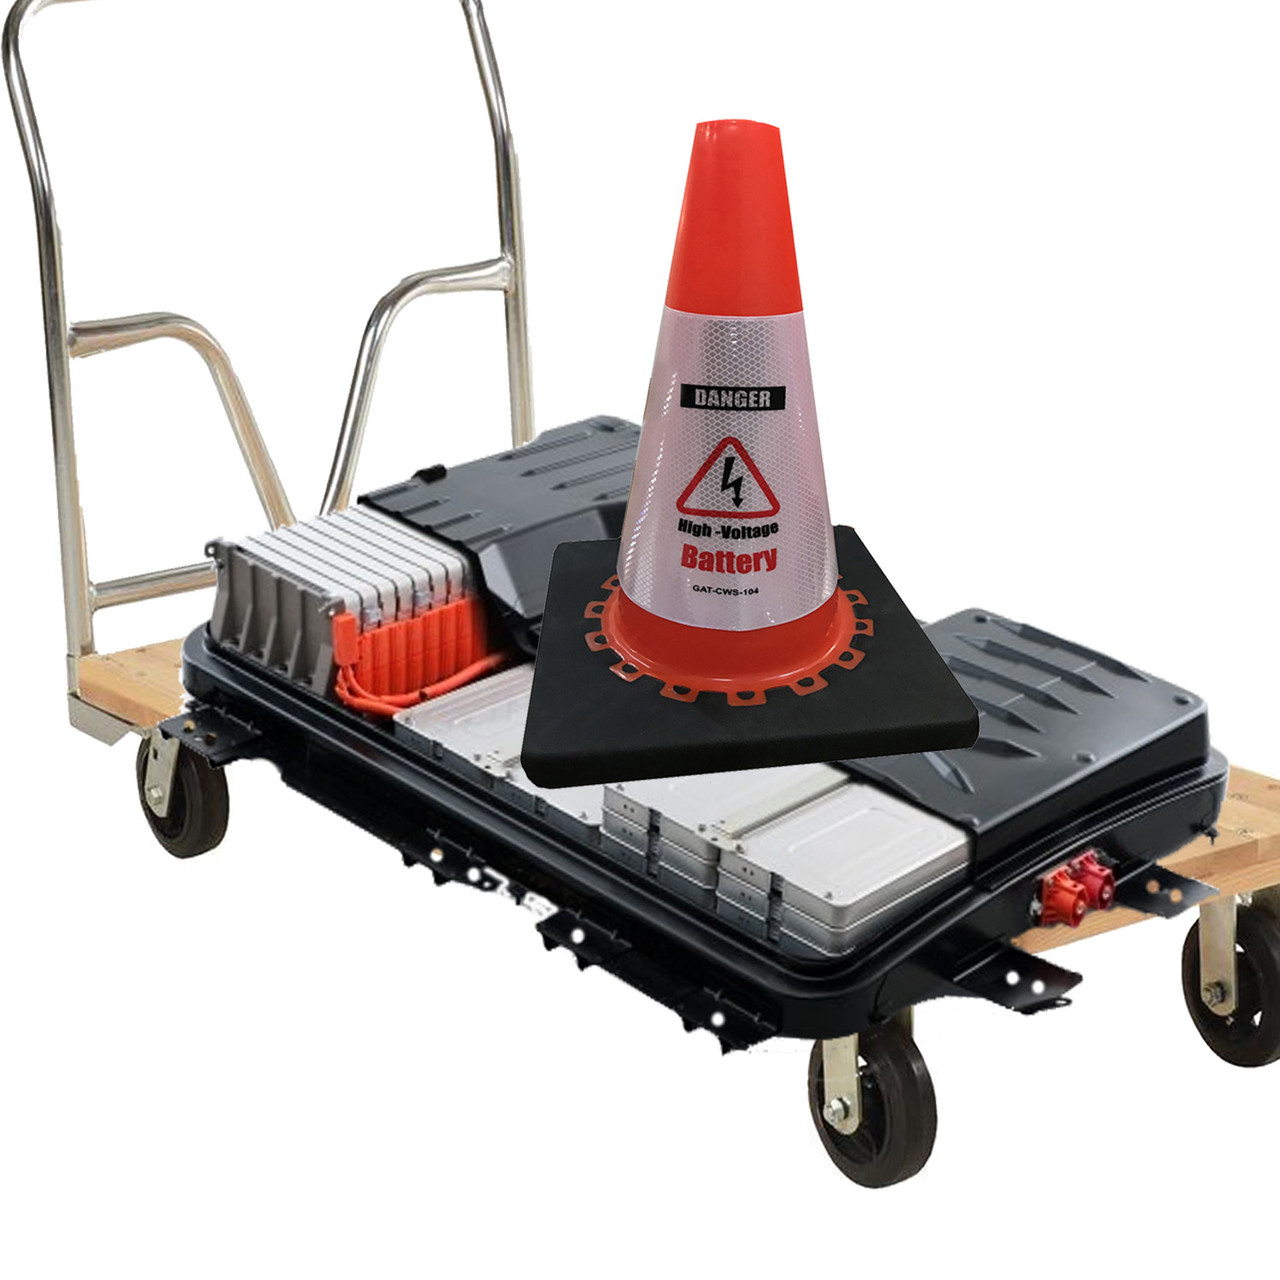 Electric Vehicle Repair Safety Cone Package 510-3